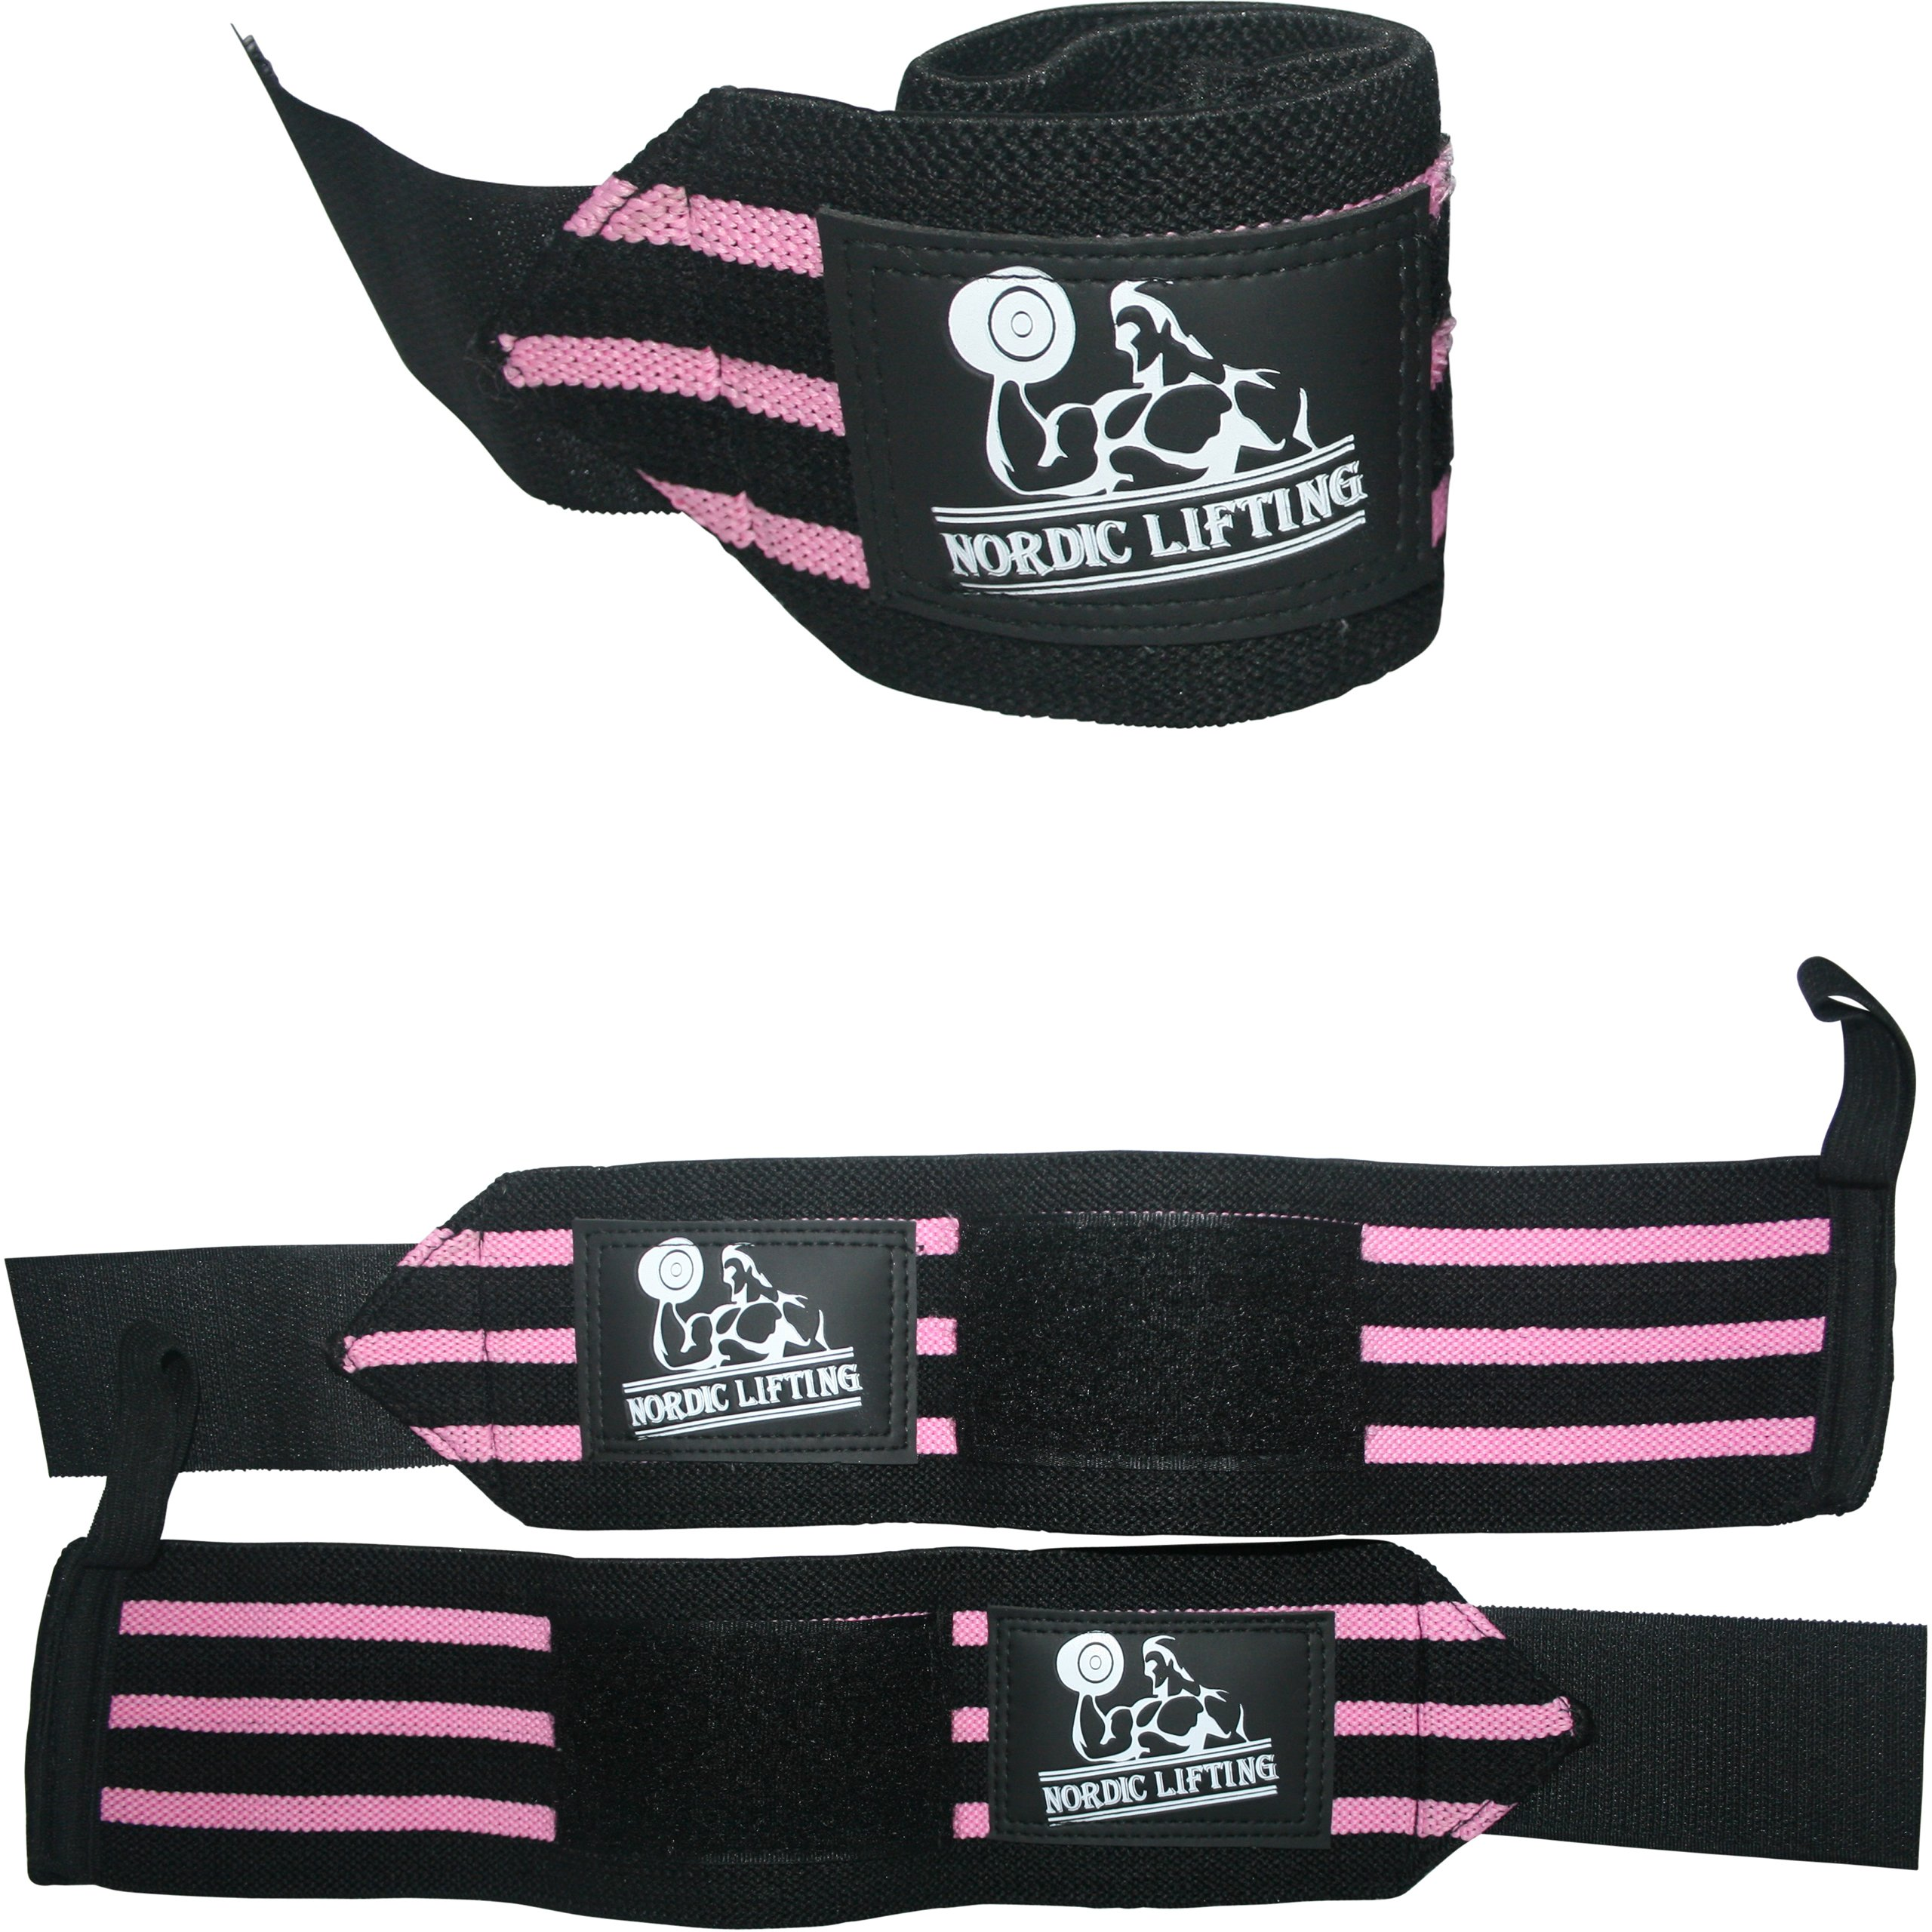 Wrist Wraps (1 Pair/2 Wraps) for Weightlifting/Cross Training/Powerlifting/Bodybuilding-Women & Men-Premium Quality Equipment & Accessories Avoid Injury During Weight Lifting-(Pink)-1 Year Warranty